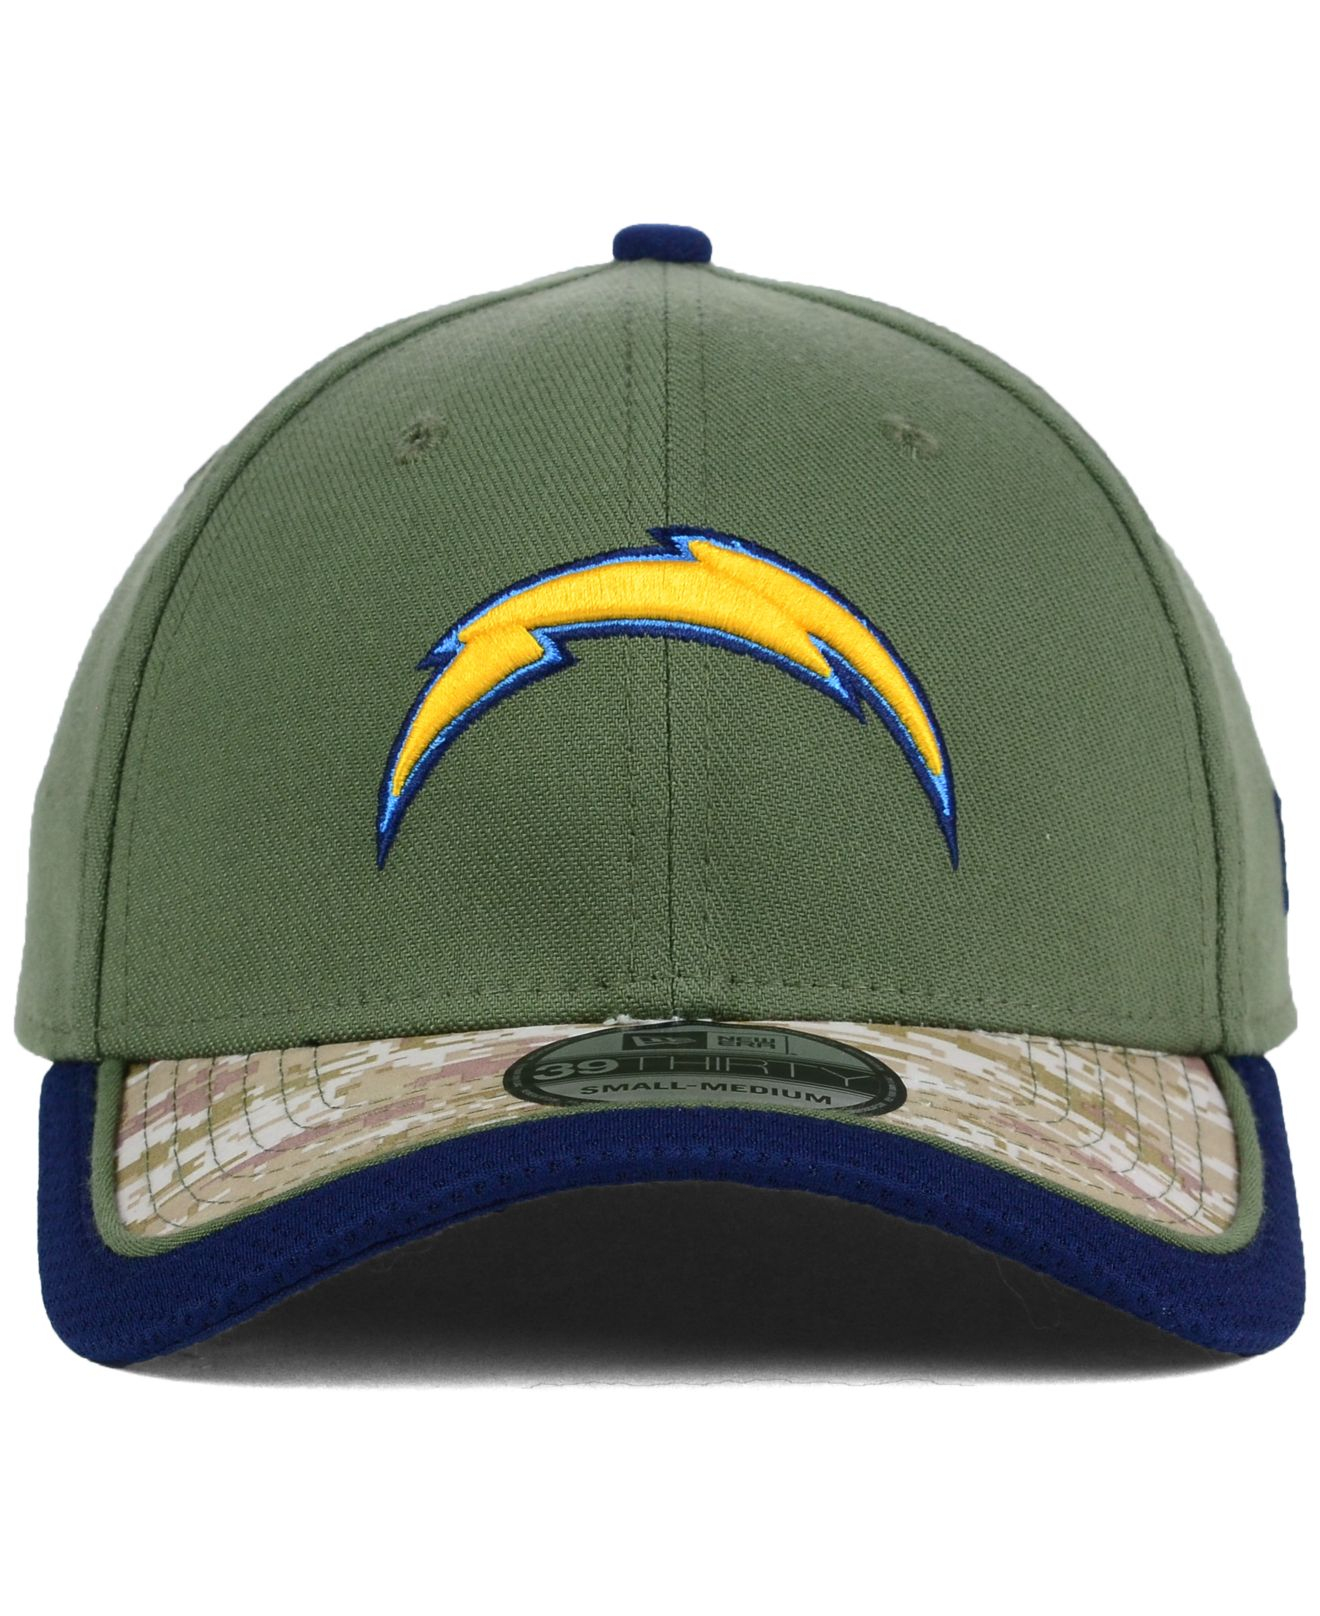 Lyst - Ktz San Diego Chargers Salute To Service 39thirty Cap in ... dfc107f12837